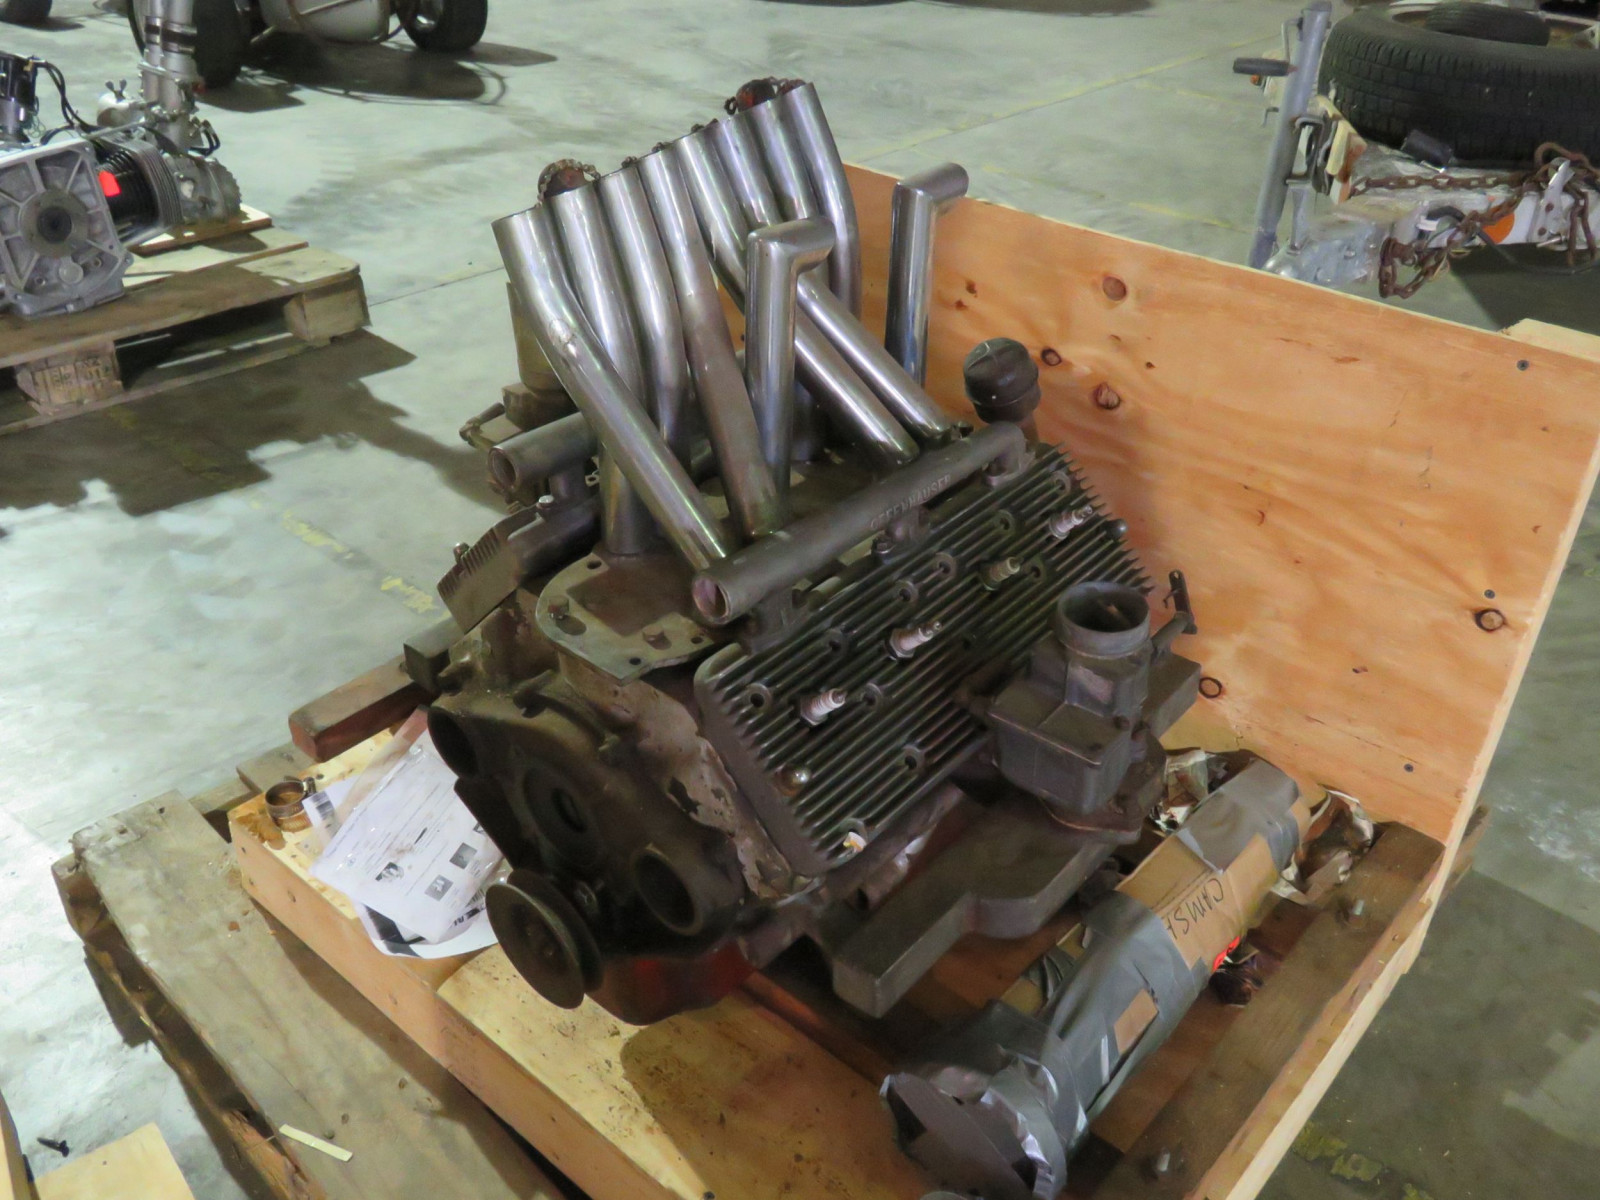 Reverse Flathead V8  60hp Motor with Offenhauser Heads for Midget Race Car Exhaust AND Intakes switched - Image 3